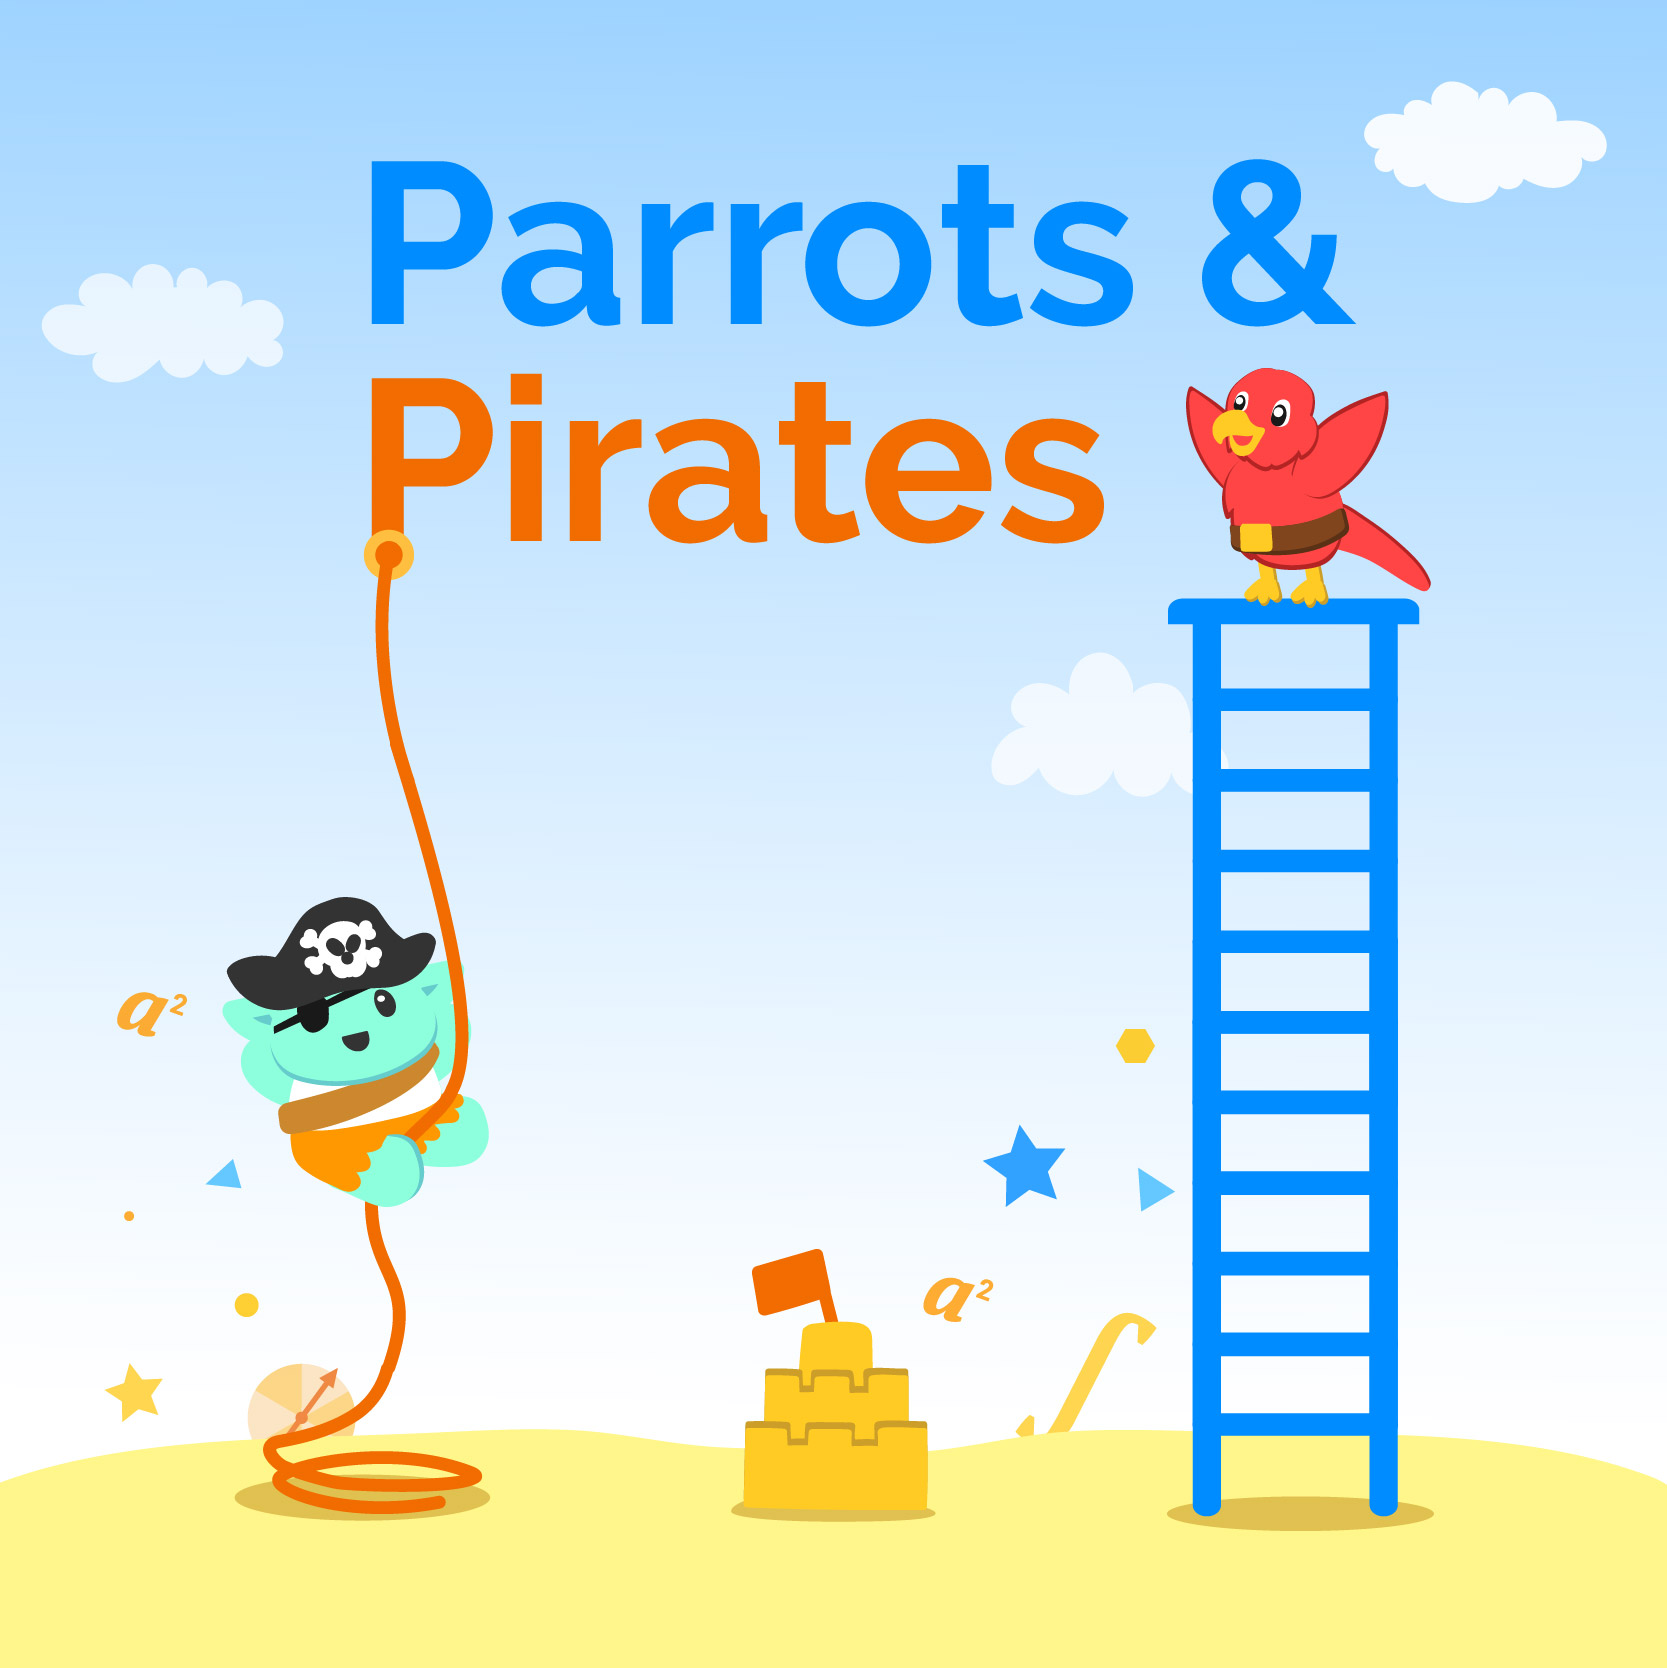 Parrots and Pirates – Learning Mathematics Through Games